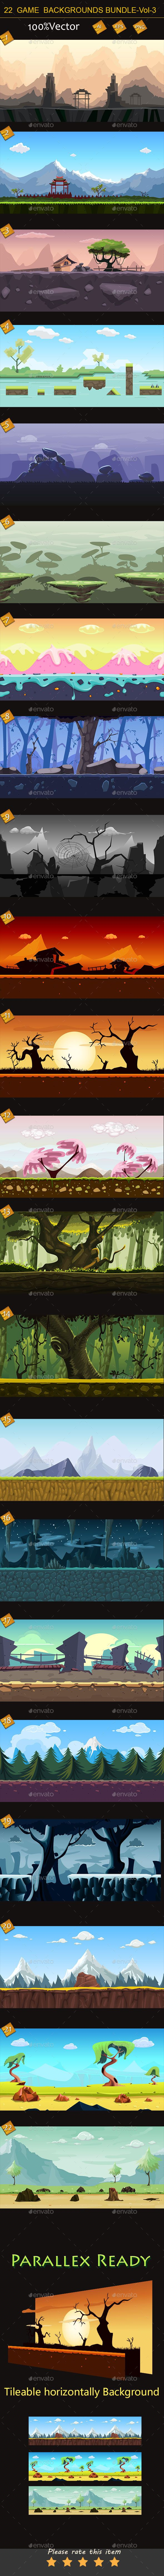 22 Game Backgrounds Bundle Volume 3 Download here: https://graphicriver.net/item/22-game-backgrounds-bundle-volume-3/12014140?ref=KlitVogli